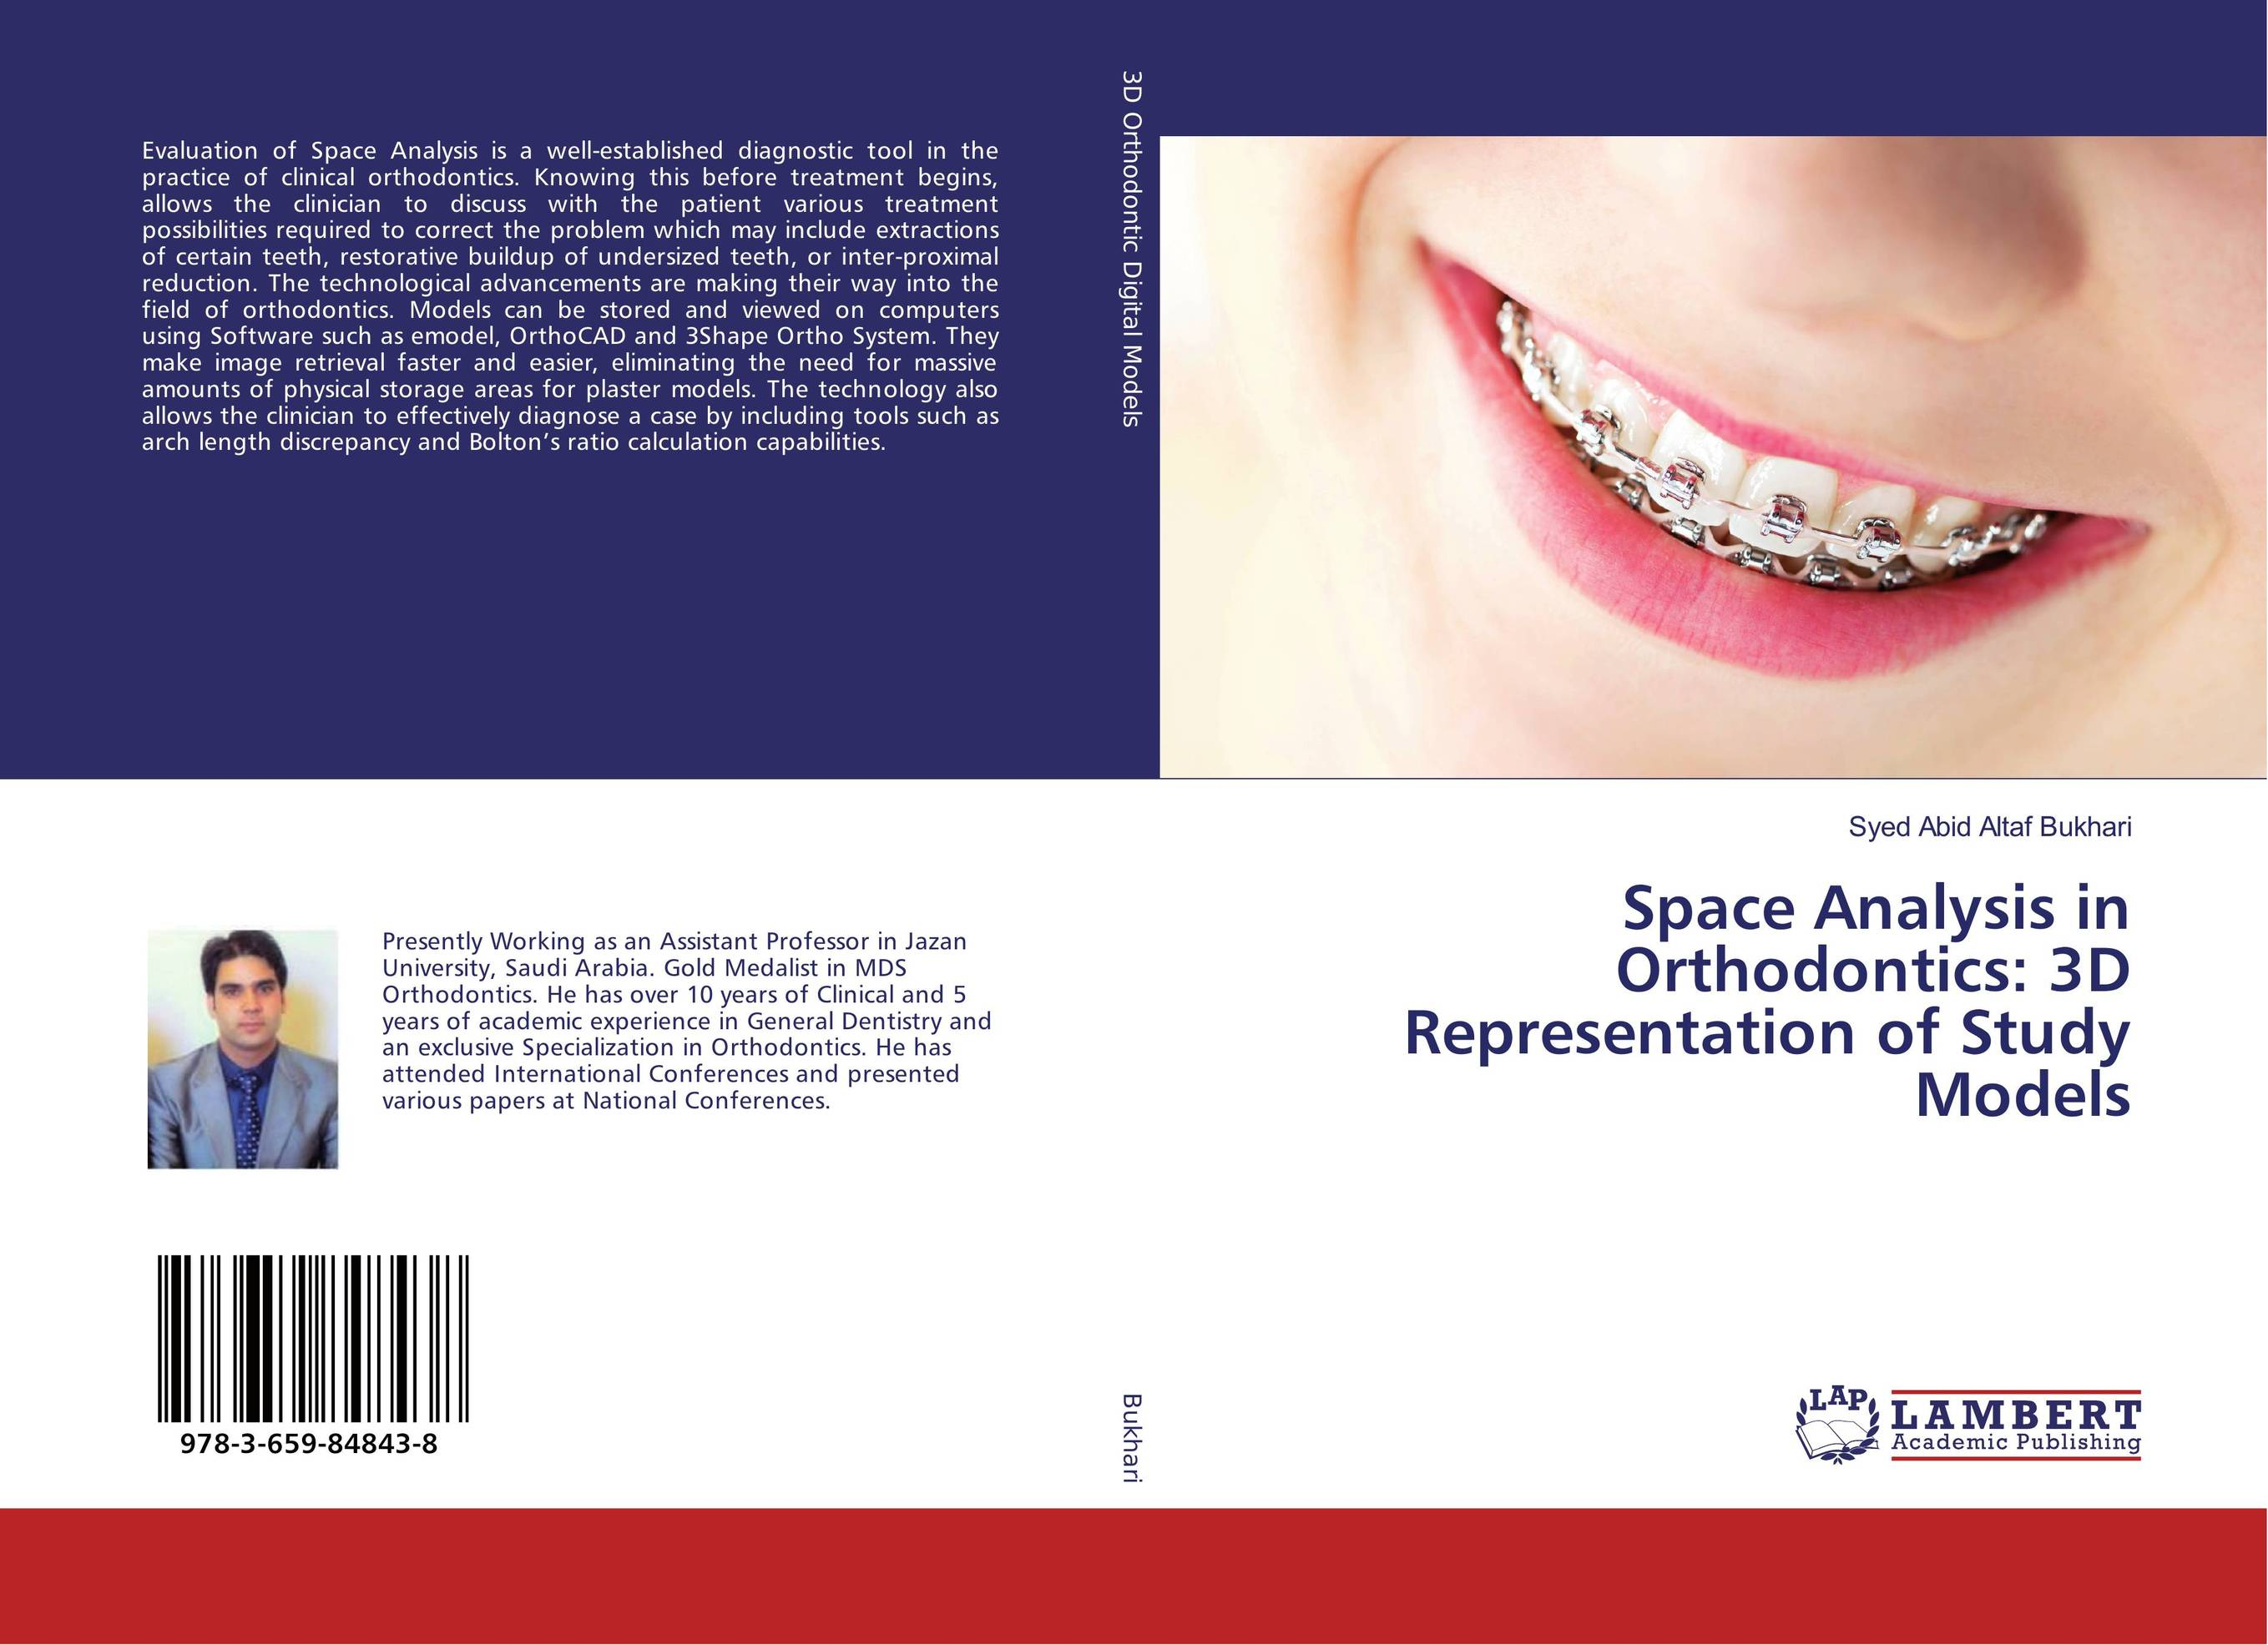 Space Analysis in Orthodontics: 3D Representation of Study Models occlusion in orthodontics